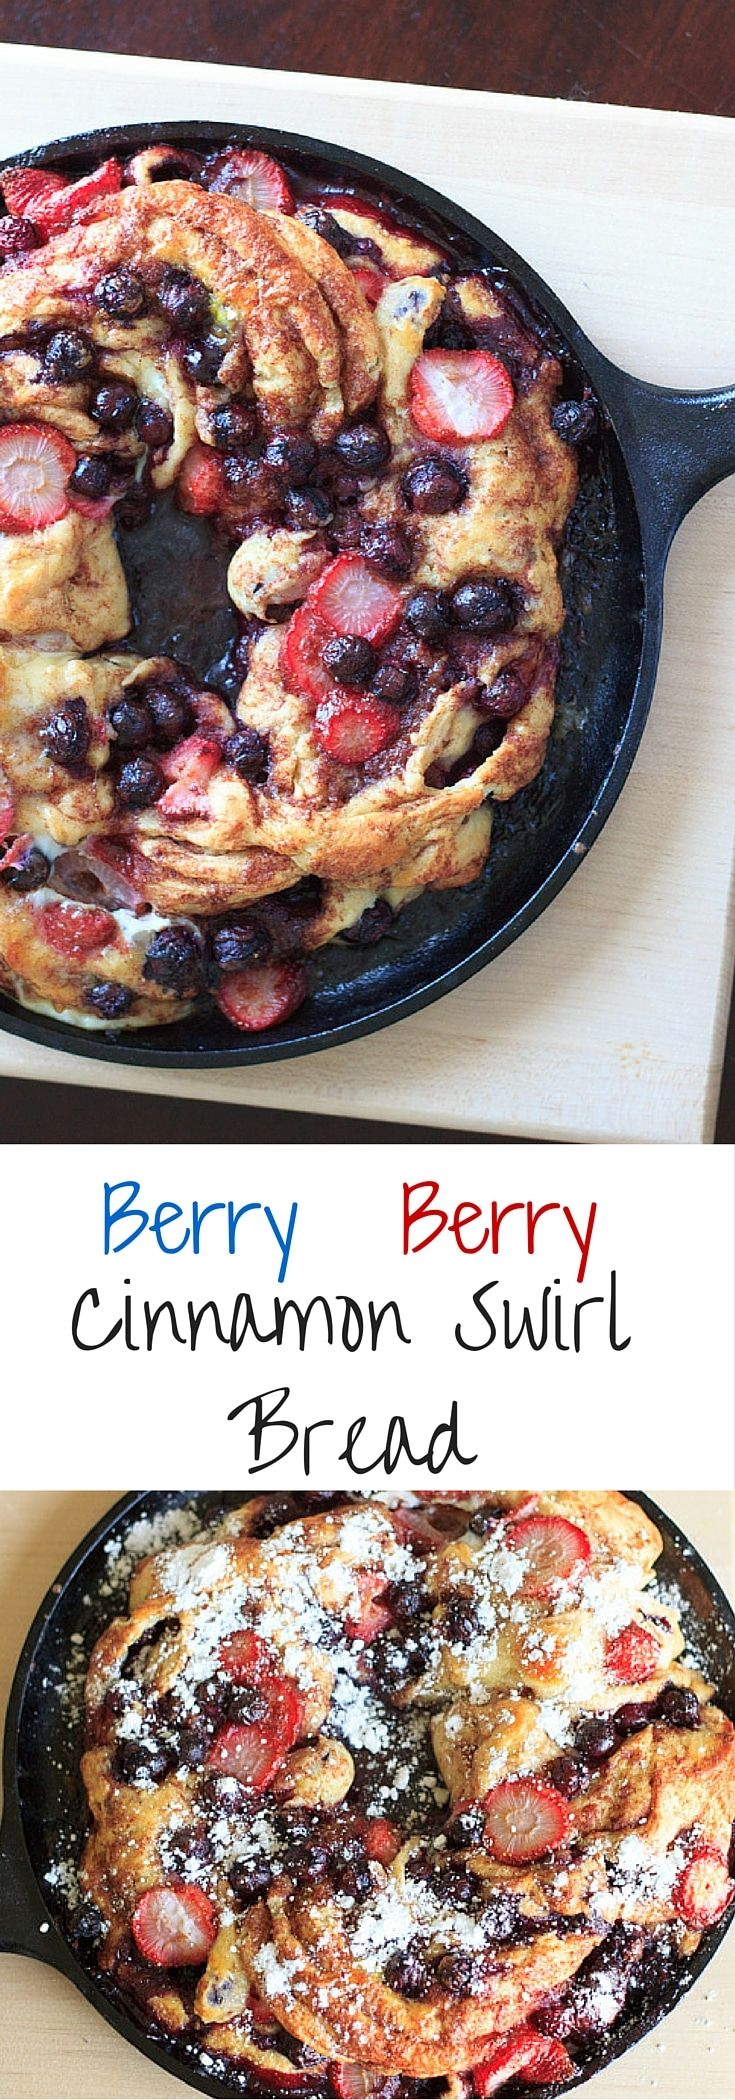 Berry berry cinnamon swirl bread. Berries stuffed inside delicious cinnamon swirl bread and baked to perfection. Much easier to make than it looks! via @trialandeater